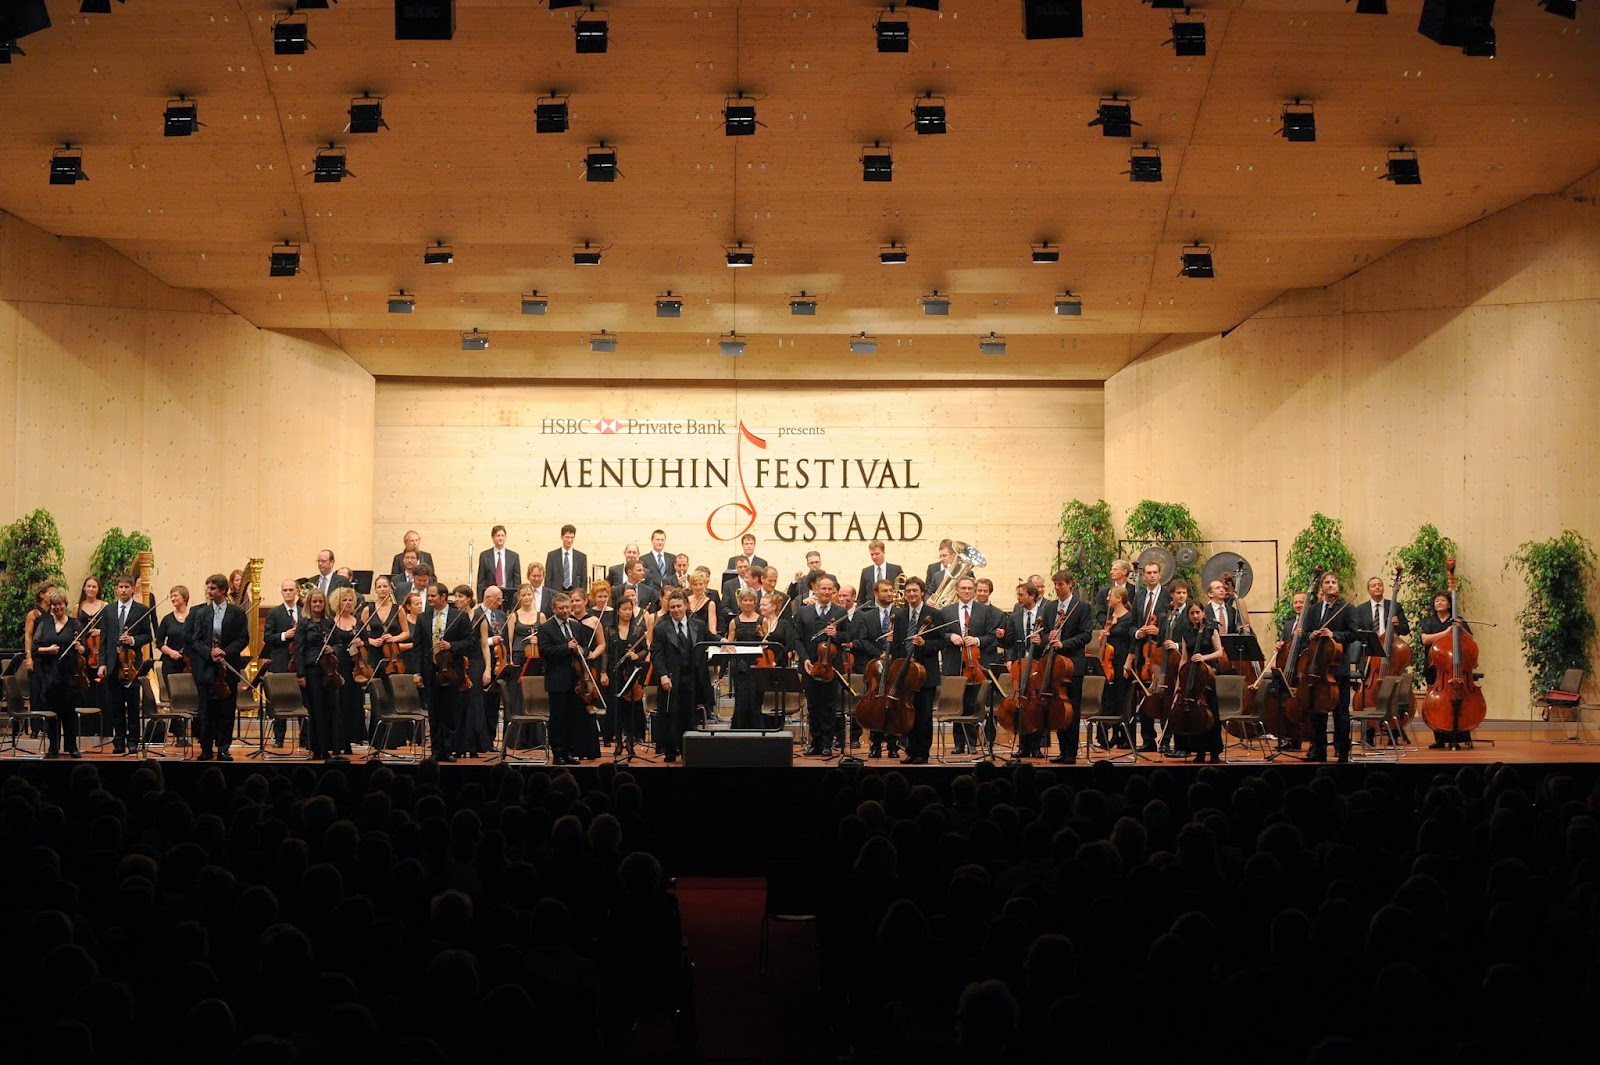 Gstaad Festival Orchestra